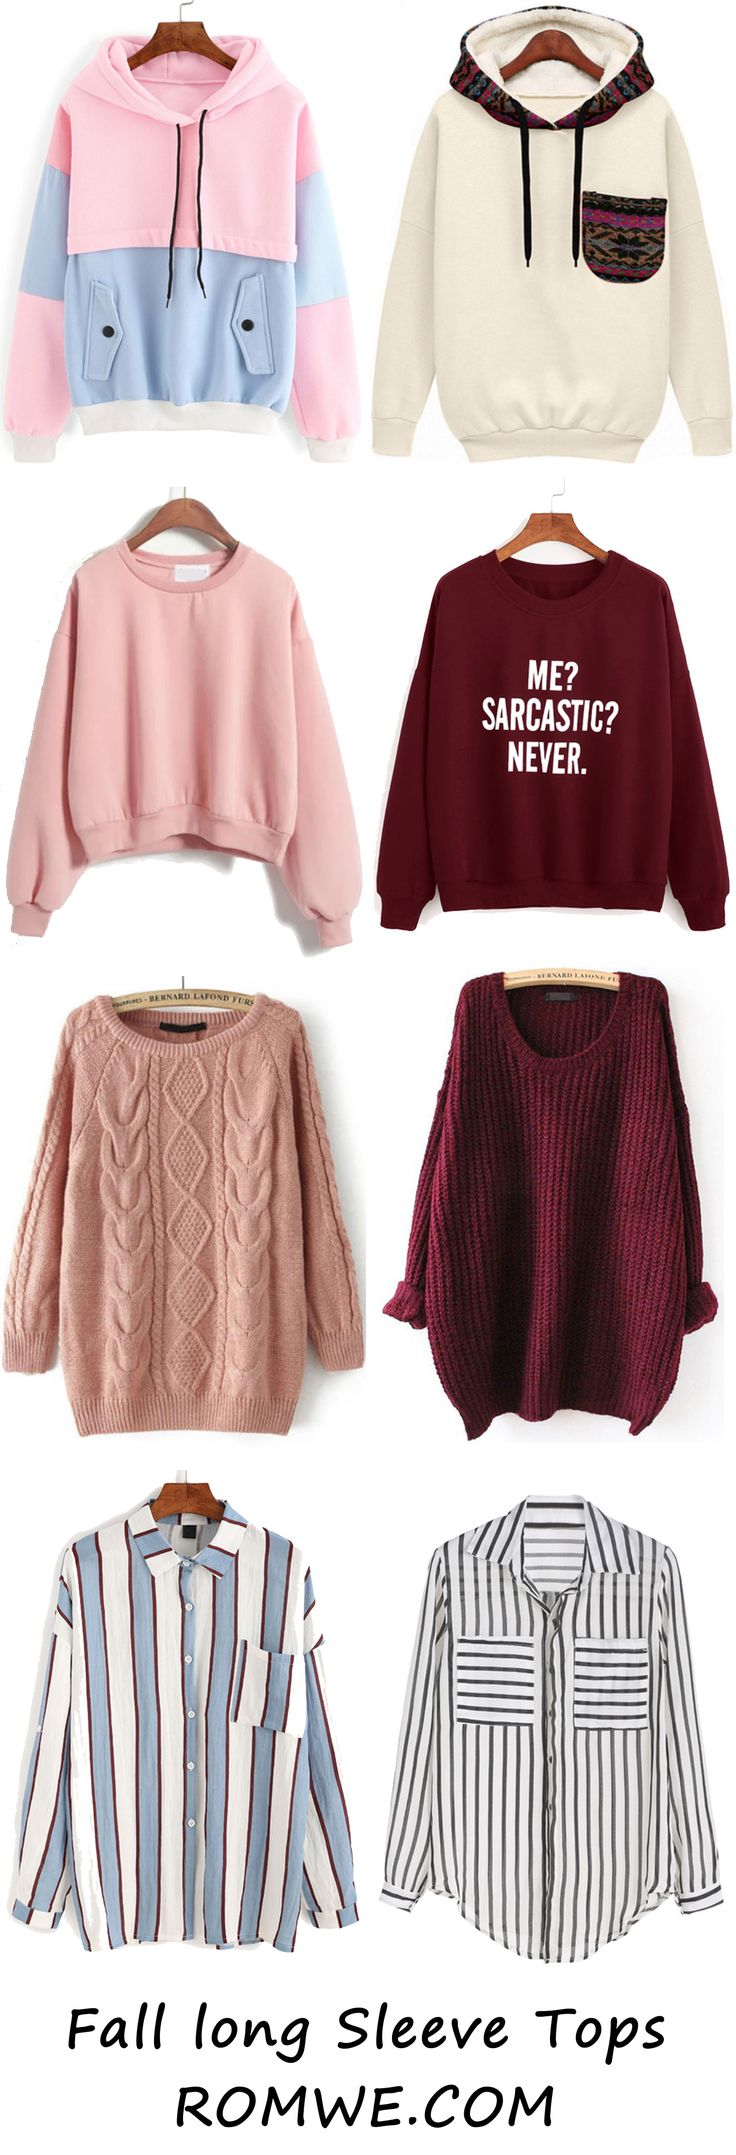 Fall Chic Long Sleeve Tops from romwe.com